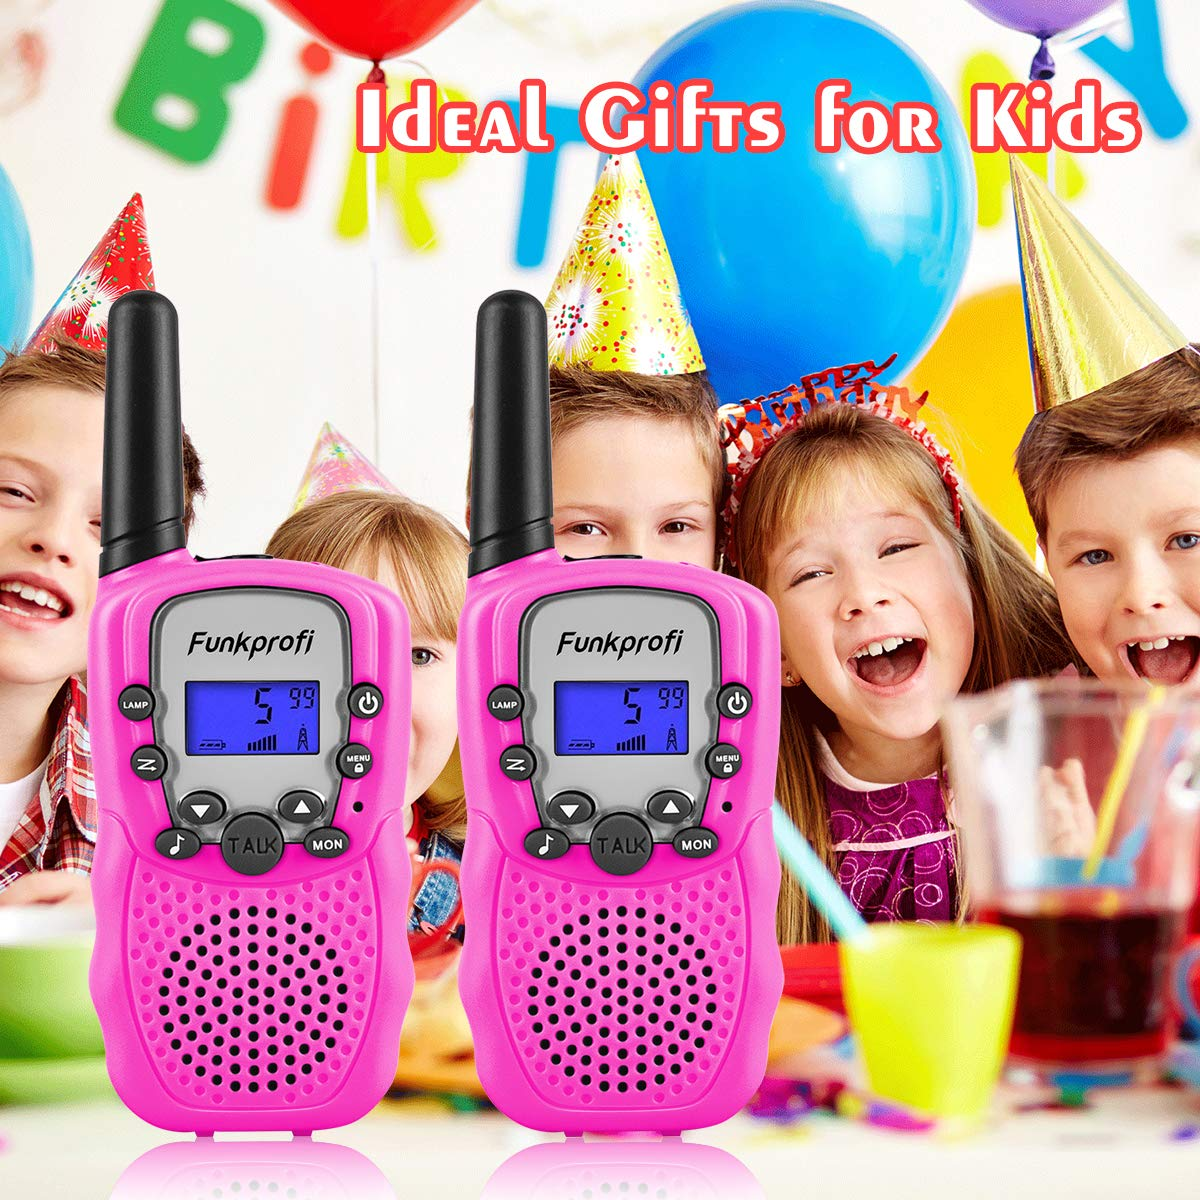 Funkprofi Walkie Talkies for Kids, VOX Hands Free Noise Canceling Kids Walkie Talkies with Belt Clip and LCD Screen, 22 Channels Long Range Two Way Radios for Camping Hiking Family Activities by Funkprofi (Image #2)